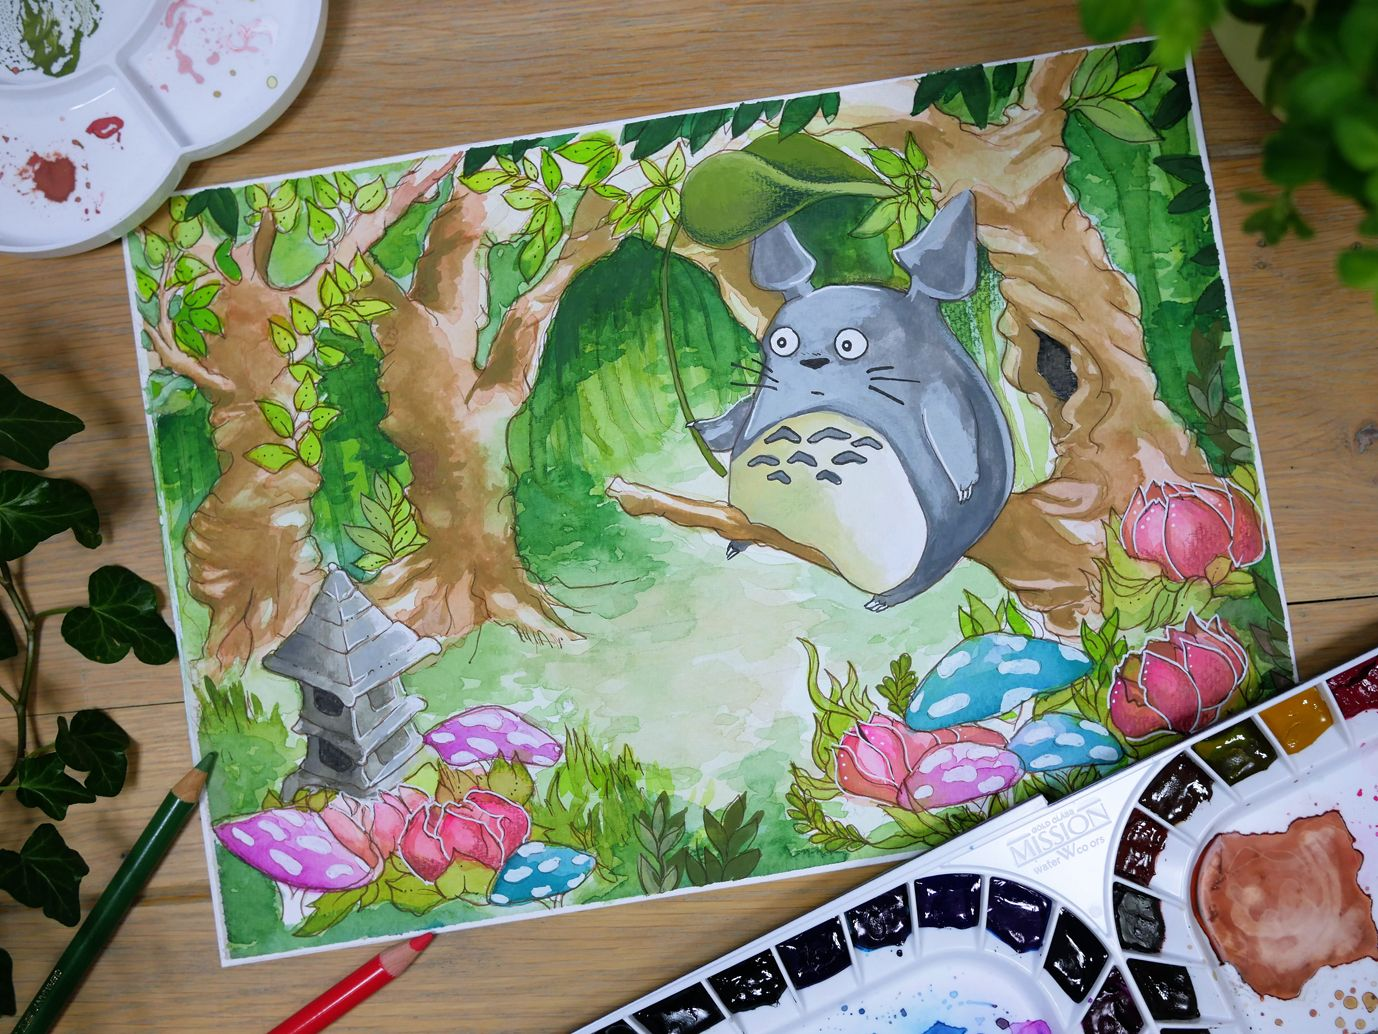 """""""My+Neighbor""""+  Painting+by+Kelsey+Yurkow,+2017+  Original+character+(c)+Studio+Ghibli  Size:+21+x+29.7+cm+(A4)    ►+Made+with+watercolor+&+gouache+paints+on+thick,+300g+cold+pressed+paper+-+lightly+textured.    ►+Color+and+value+may+vary+slightly+from+the+image+on+the+computer+screen.+The+painti..."""